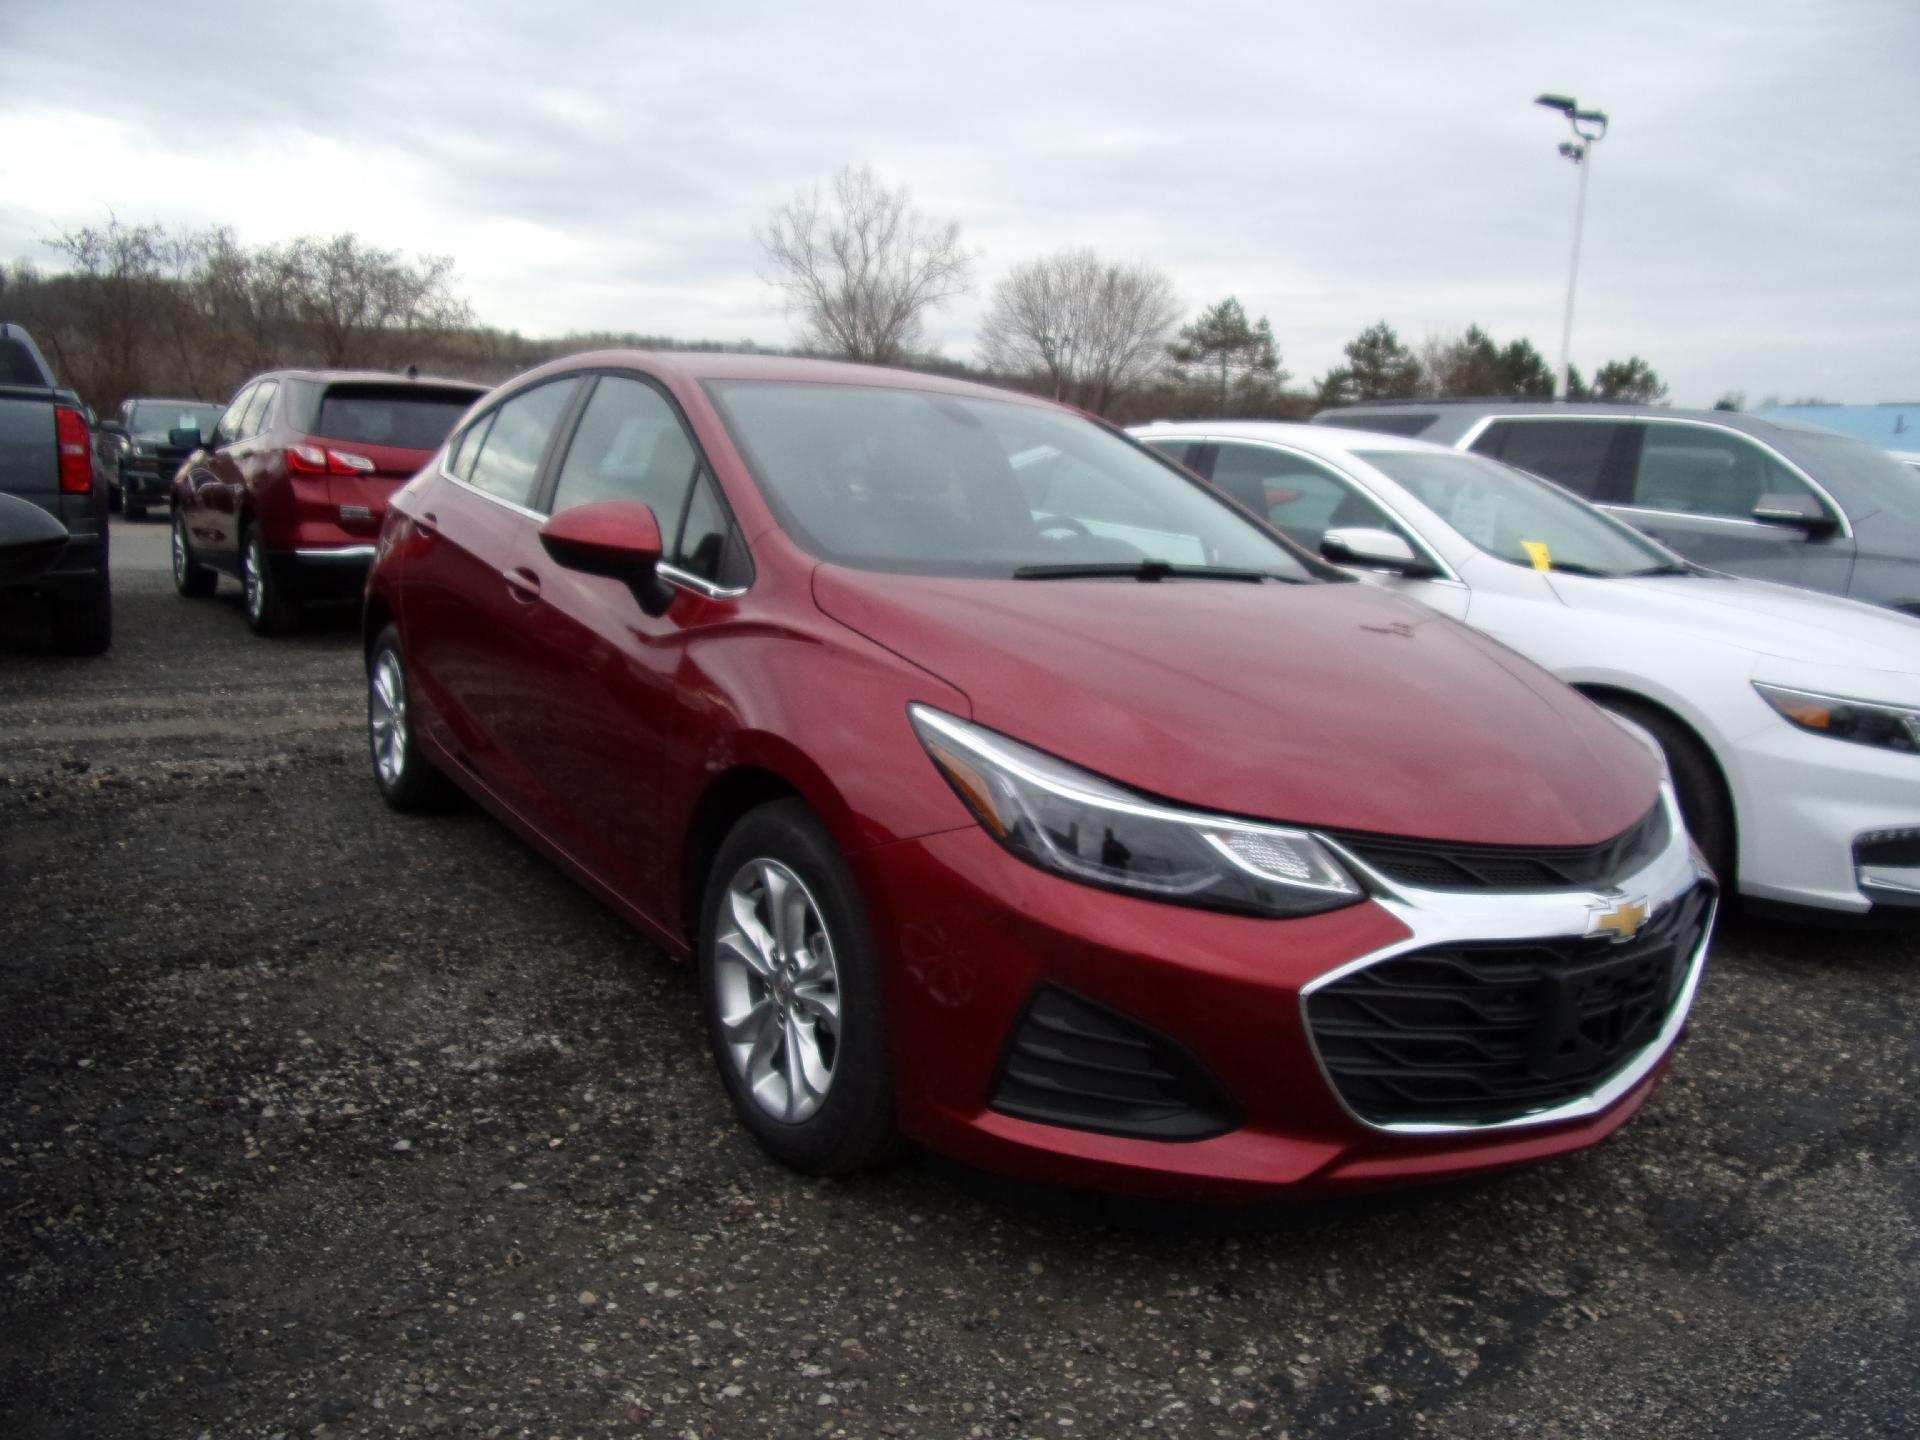 73 A 2019 Chevrolet Vehicles Images